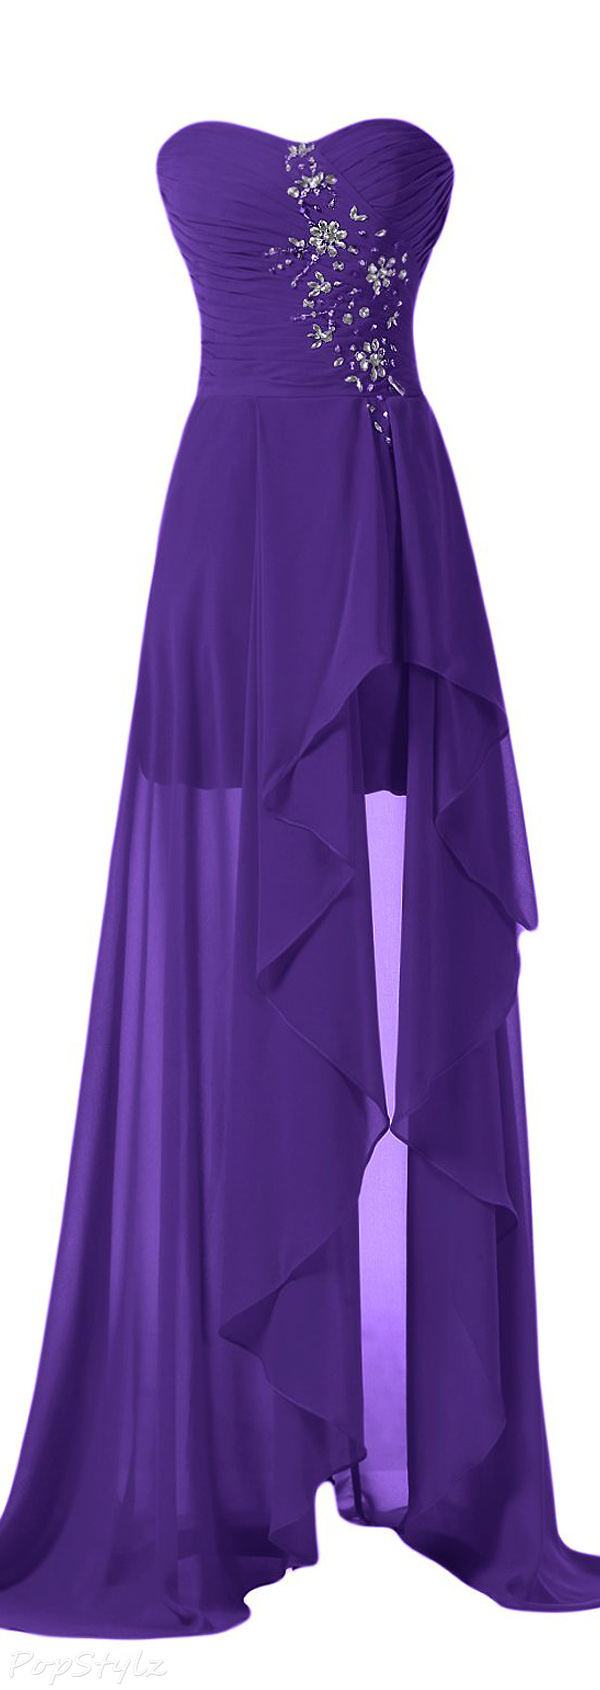 Sunvary High Low Strapless Formal Evening Gown